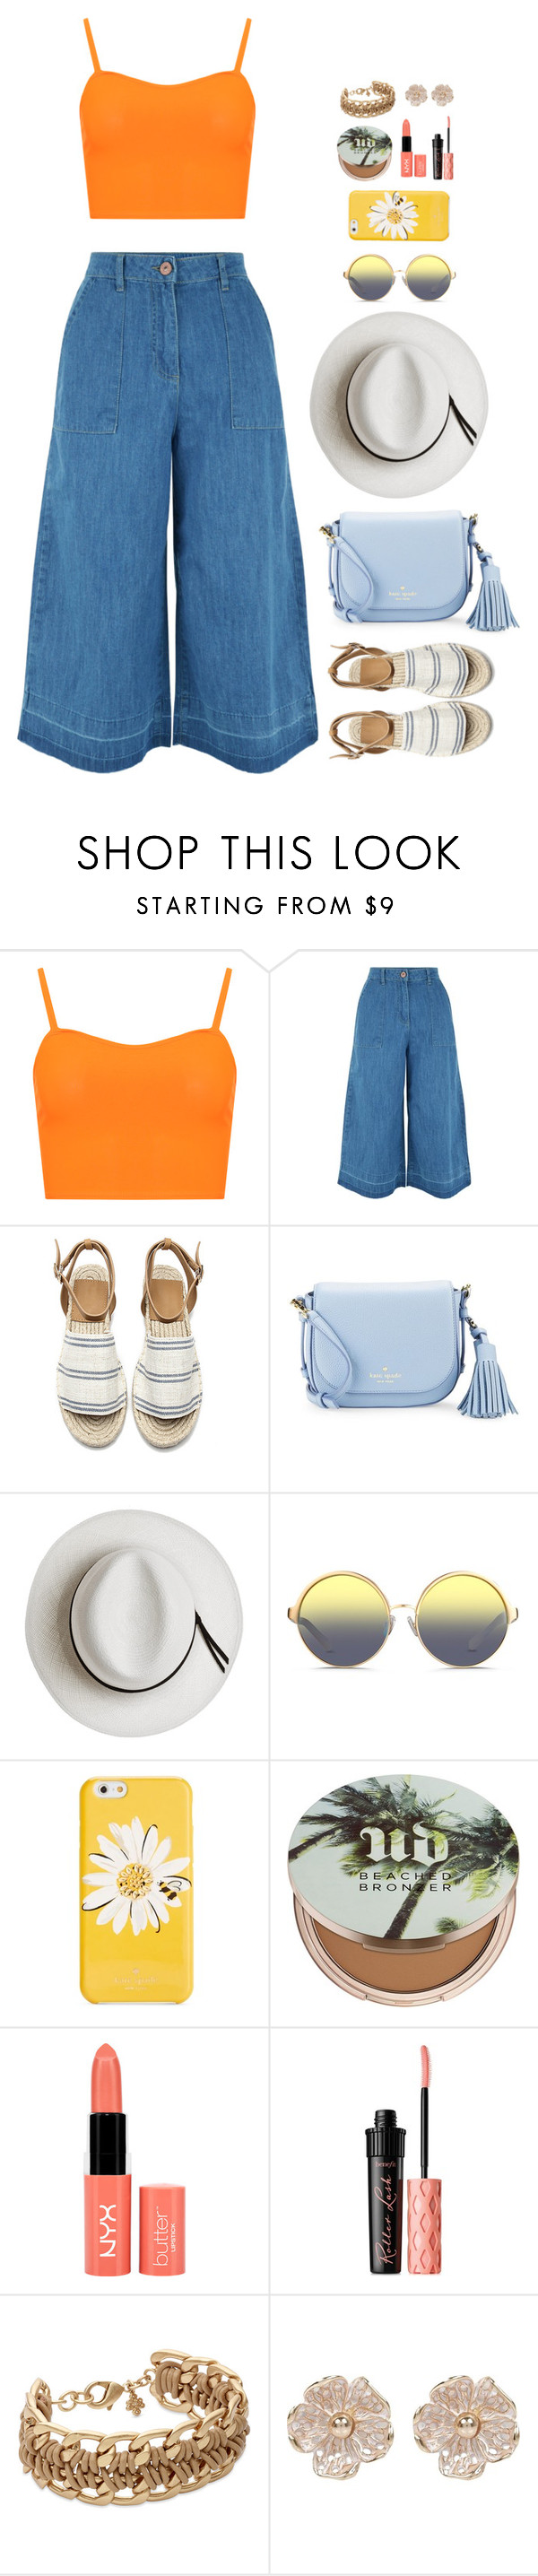 """""""All I Ask"""" by xoxomuty on Polyvore featuring WearAll, New Look, Kate Spade, Calypso Private Label, Matthew Williamson, Urban Decay, NYX, Benefit and River Island"""